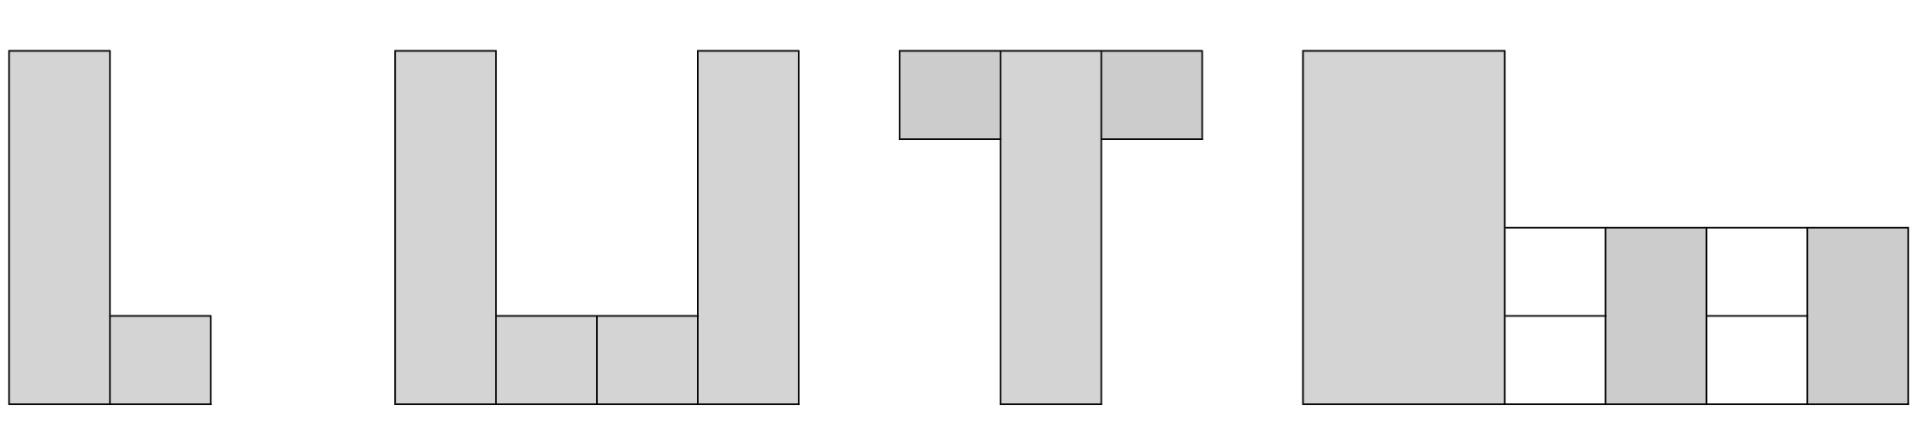 Form common or complex configurations